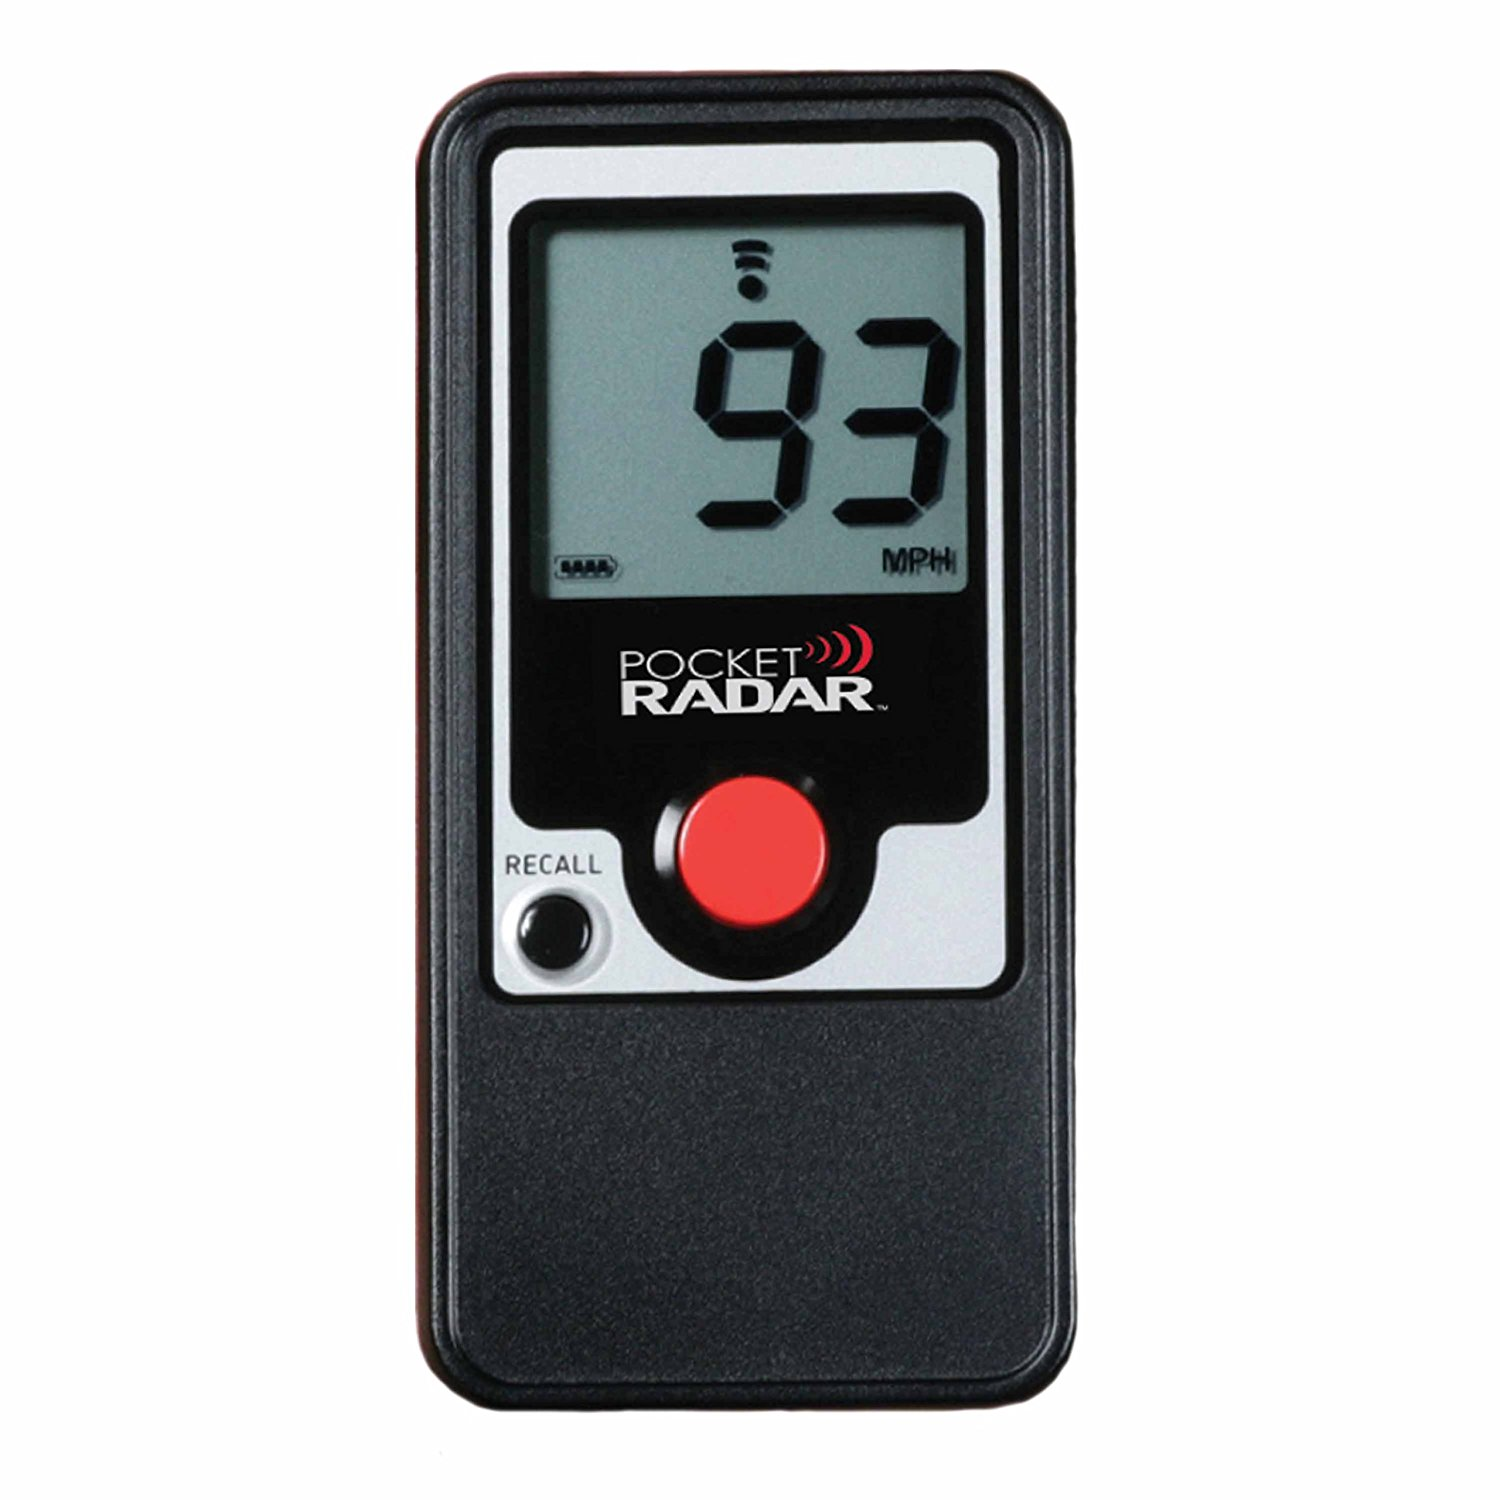 Pocket Radar Classic All Purpose Pocket Radar Gun